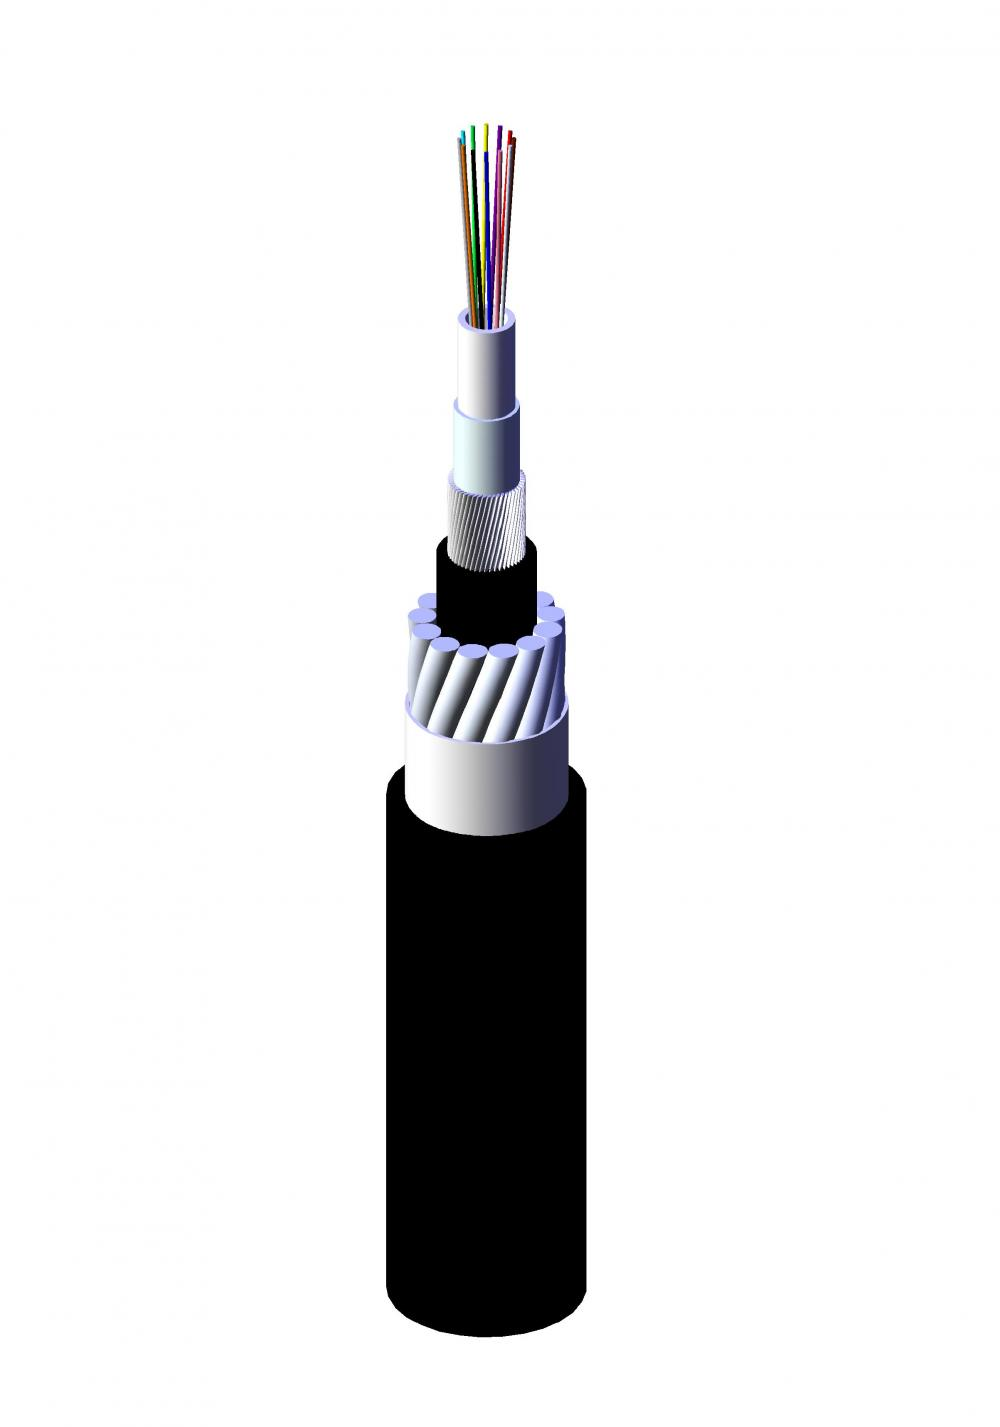 Tunnel SWA fire-resistant Uni-Loose Tube Fiber Optic Cable